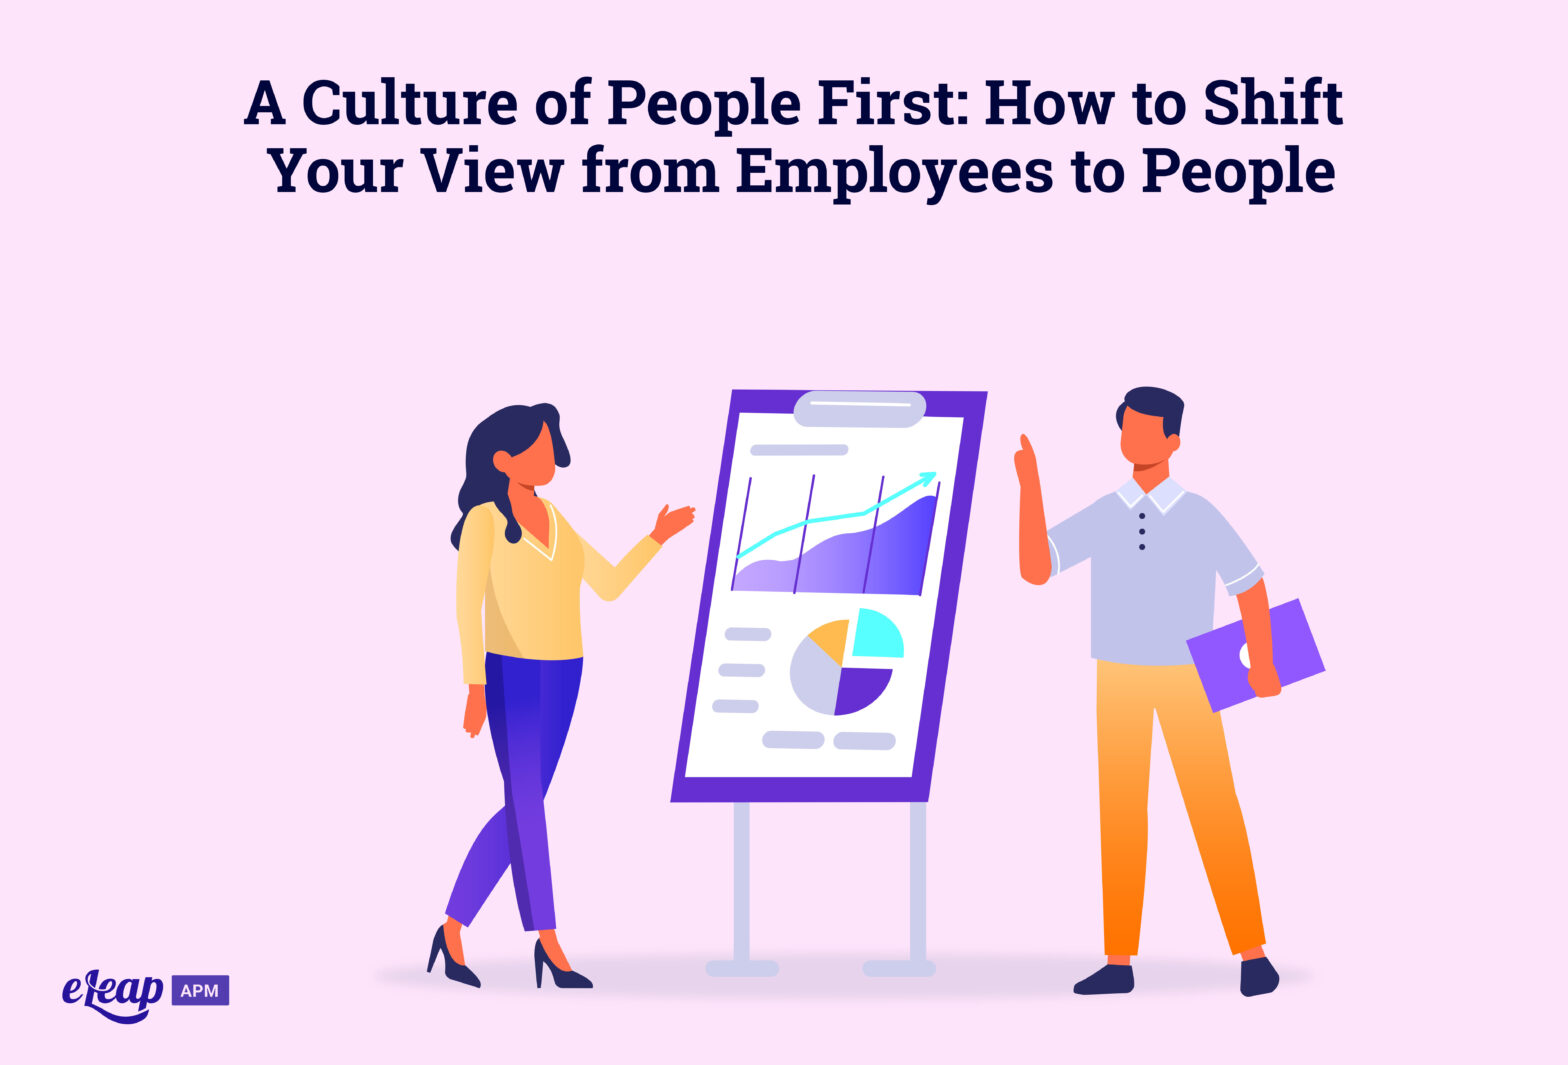 A Culture of People First: How to Shift Your View from Employees to People